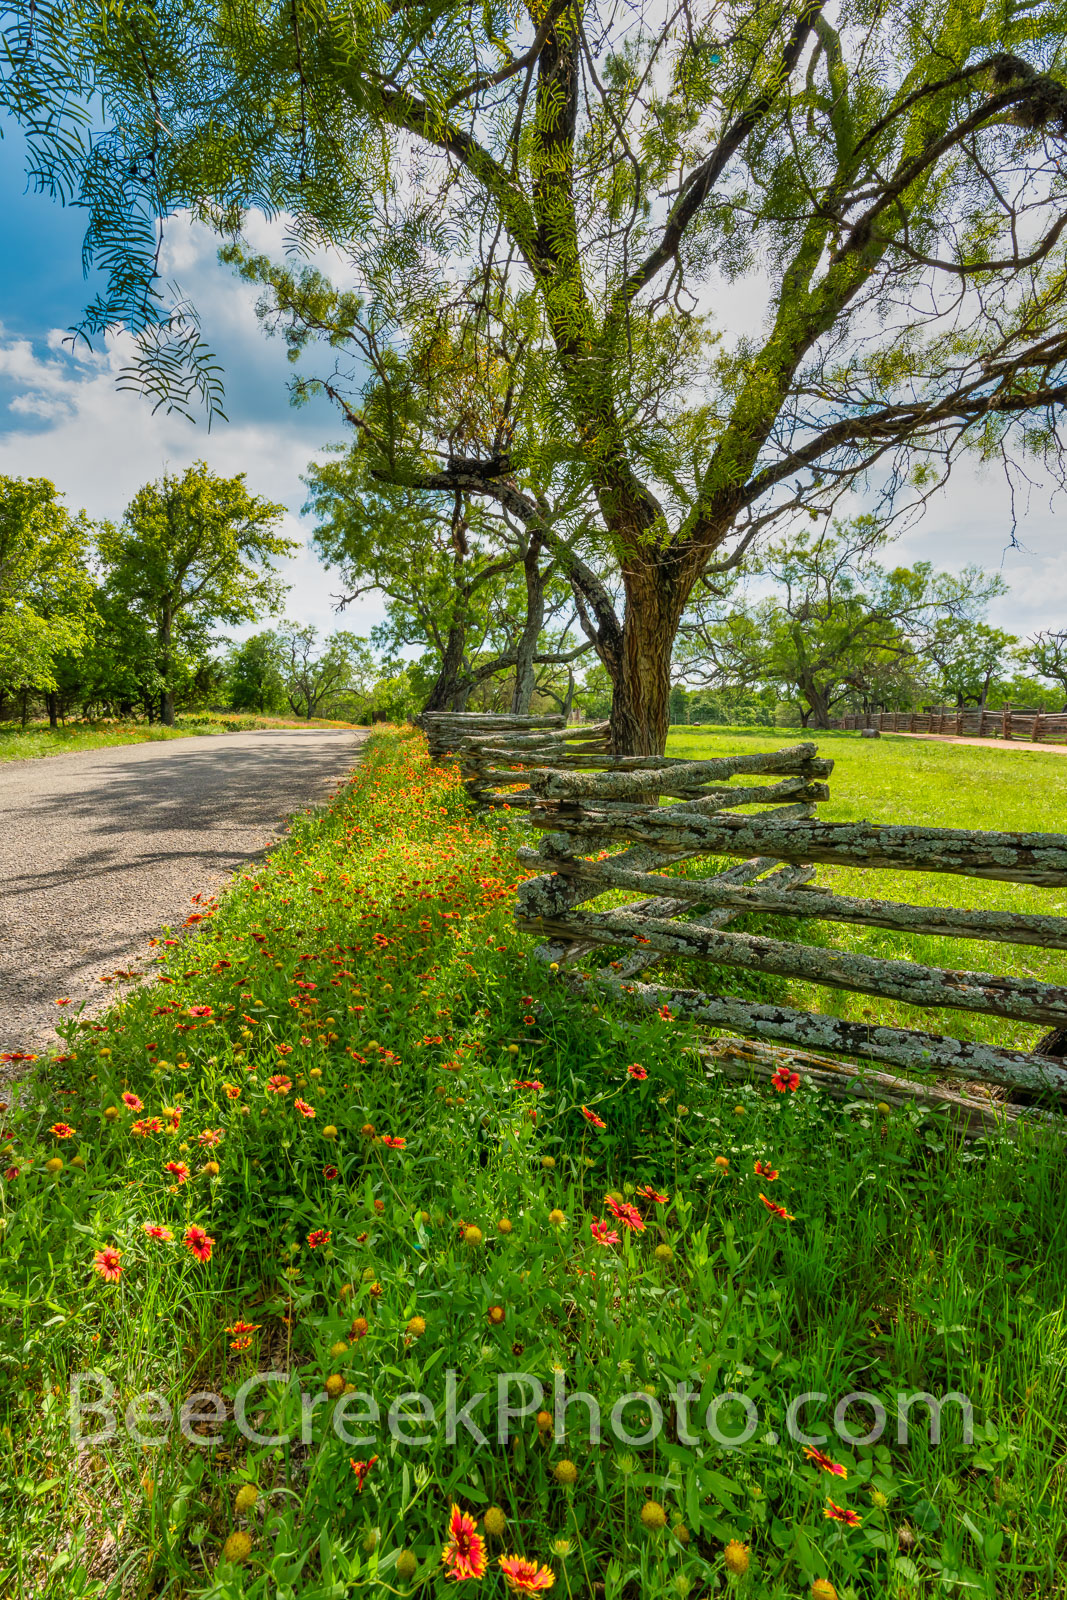 Wildflowers at the Fence Vertical - Firewheel wildflowers line this rustic wood fence along this road in the Texas hill country...